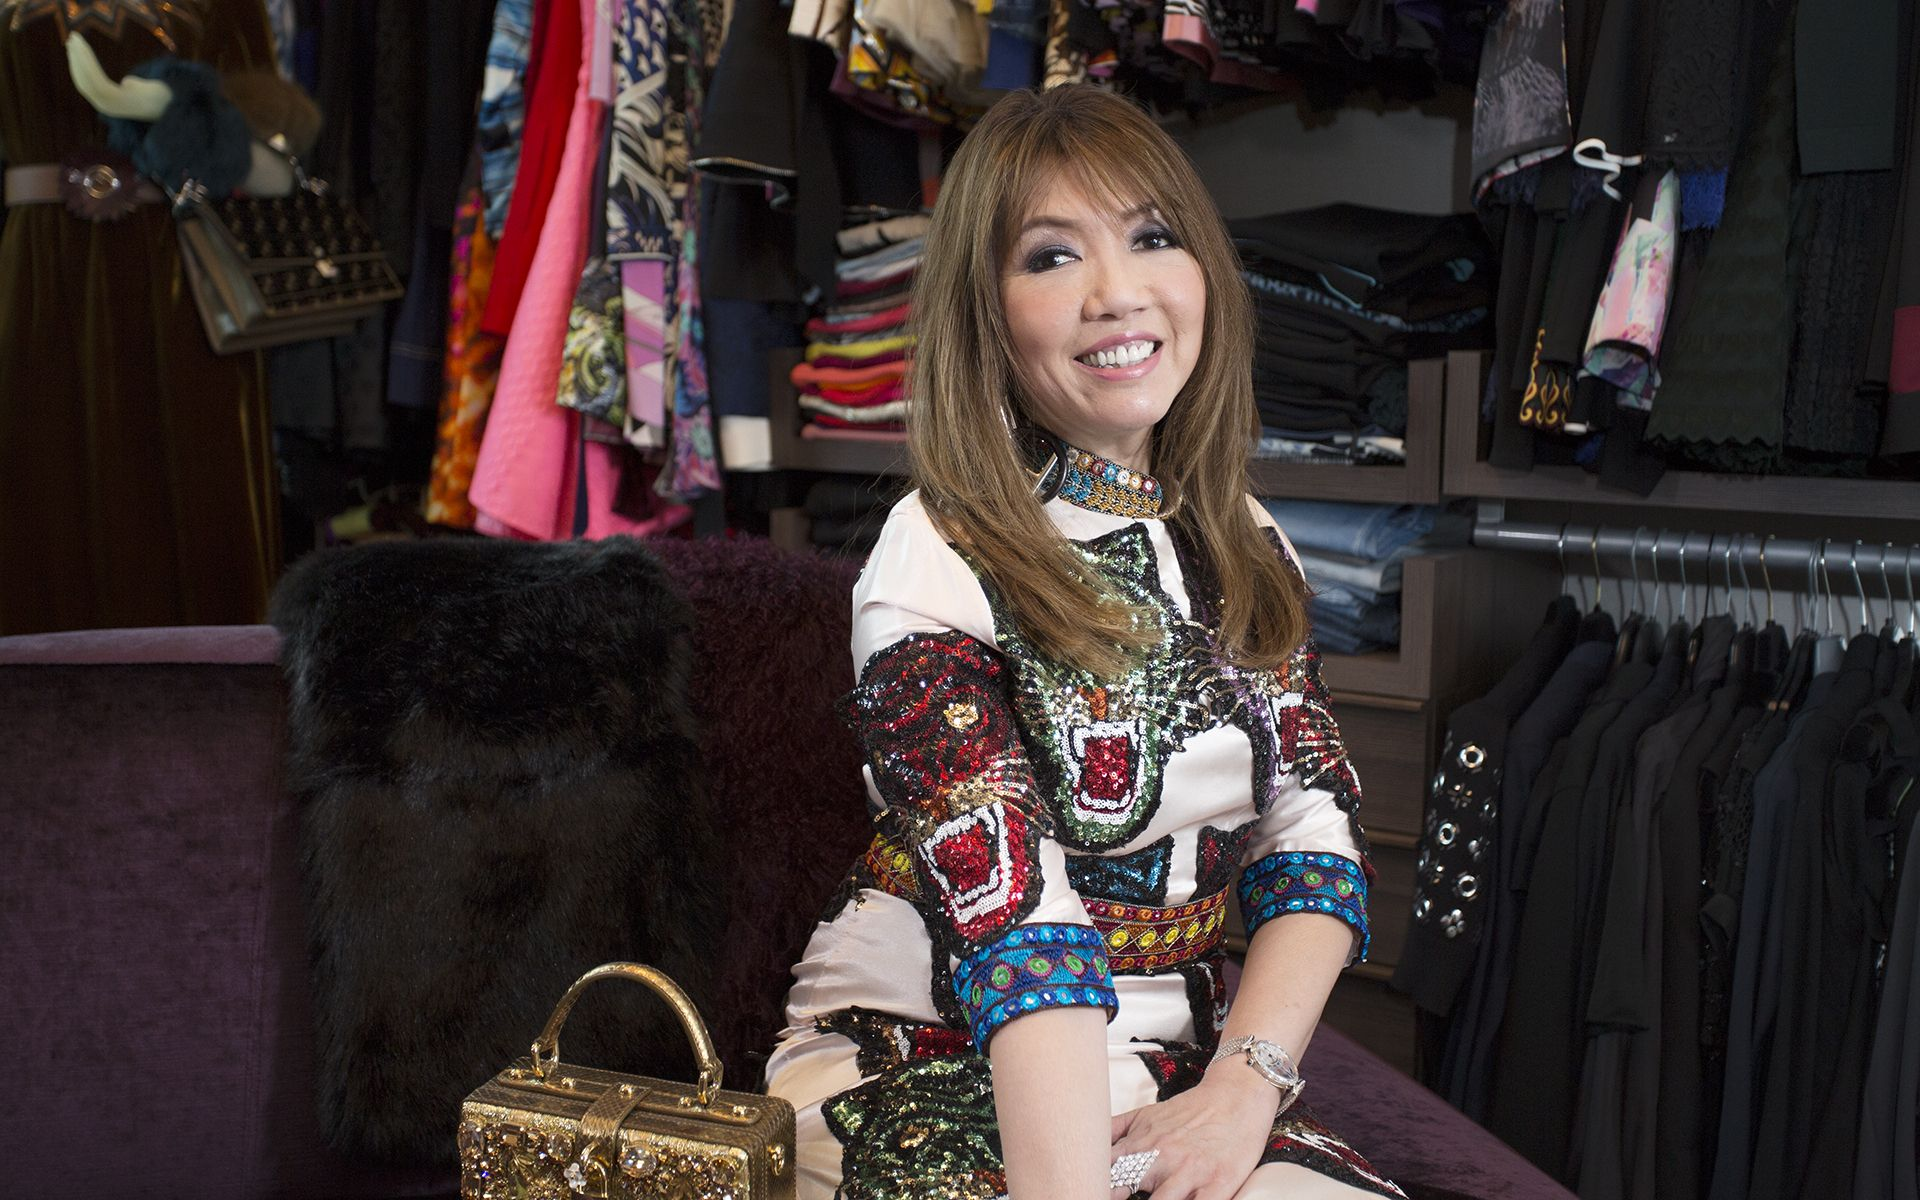 Tatler Tours: Lee Jim Leng's 3 Wardrobes Are Every Fashion Collector's Dream